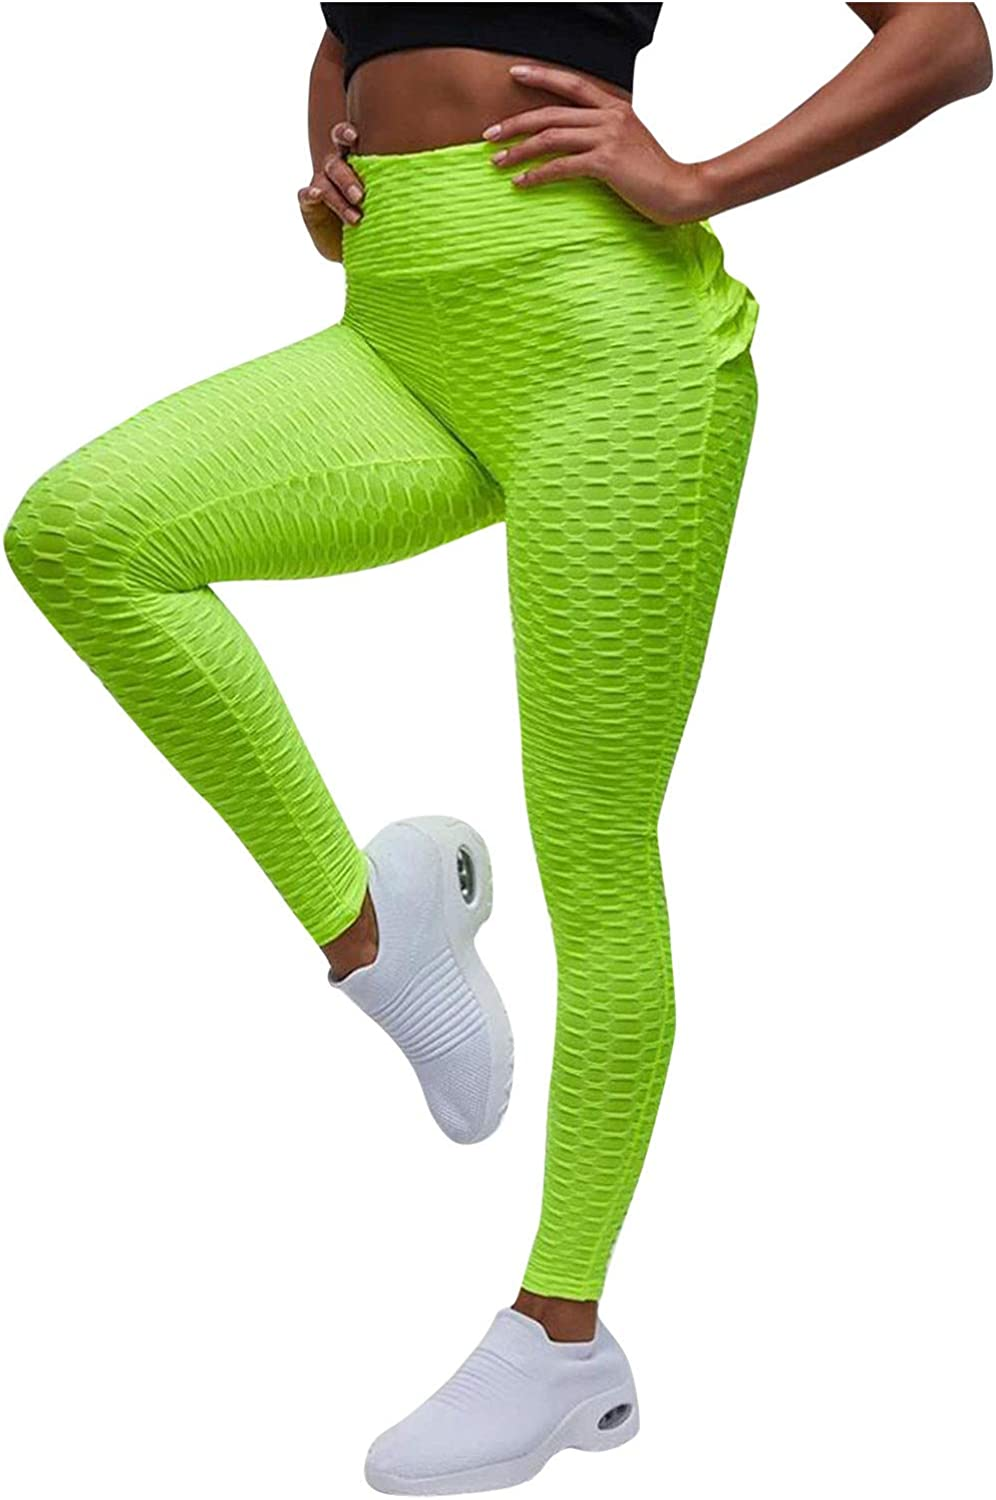 Hotkey Yoga Pants for Women, Solid Stretch Peach Hip Fitness Sports Leggings Running Exercise Casual Pants